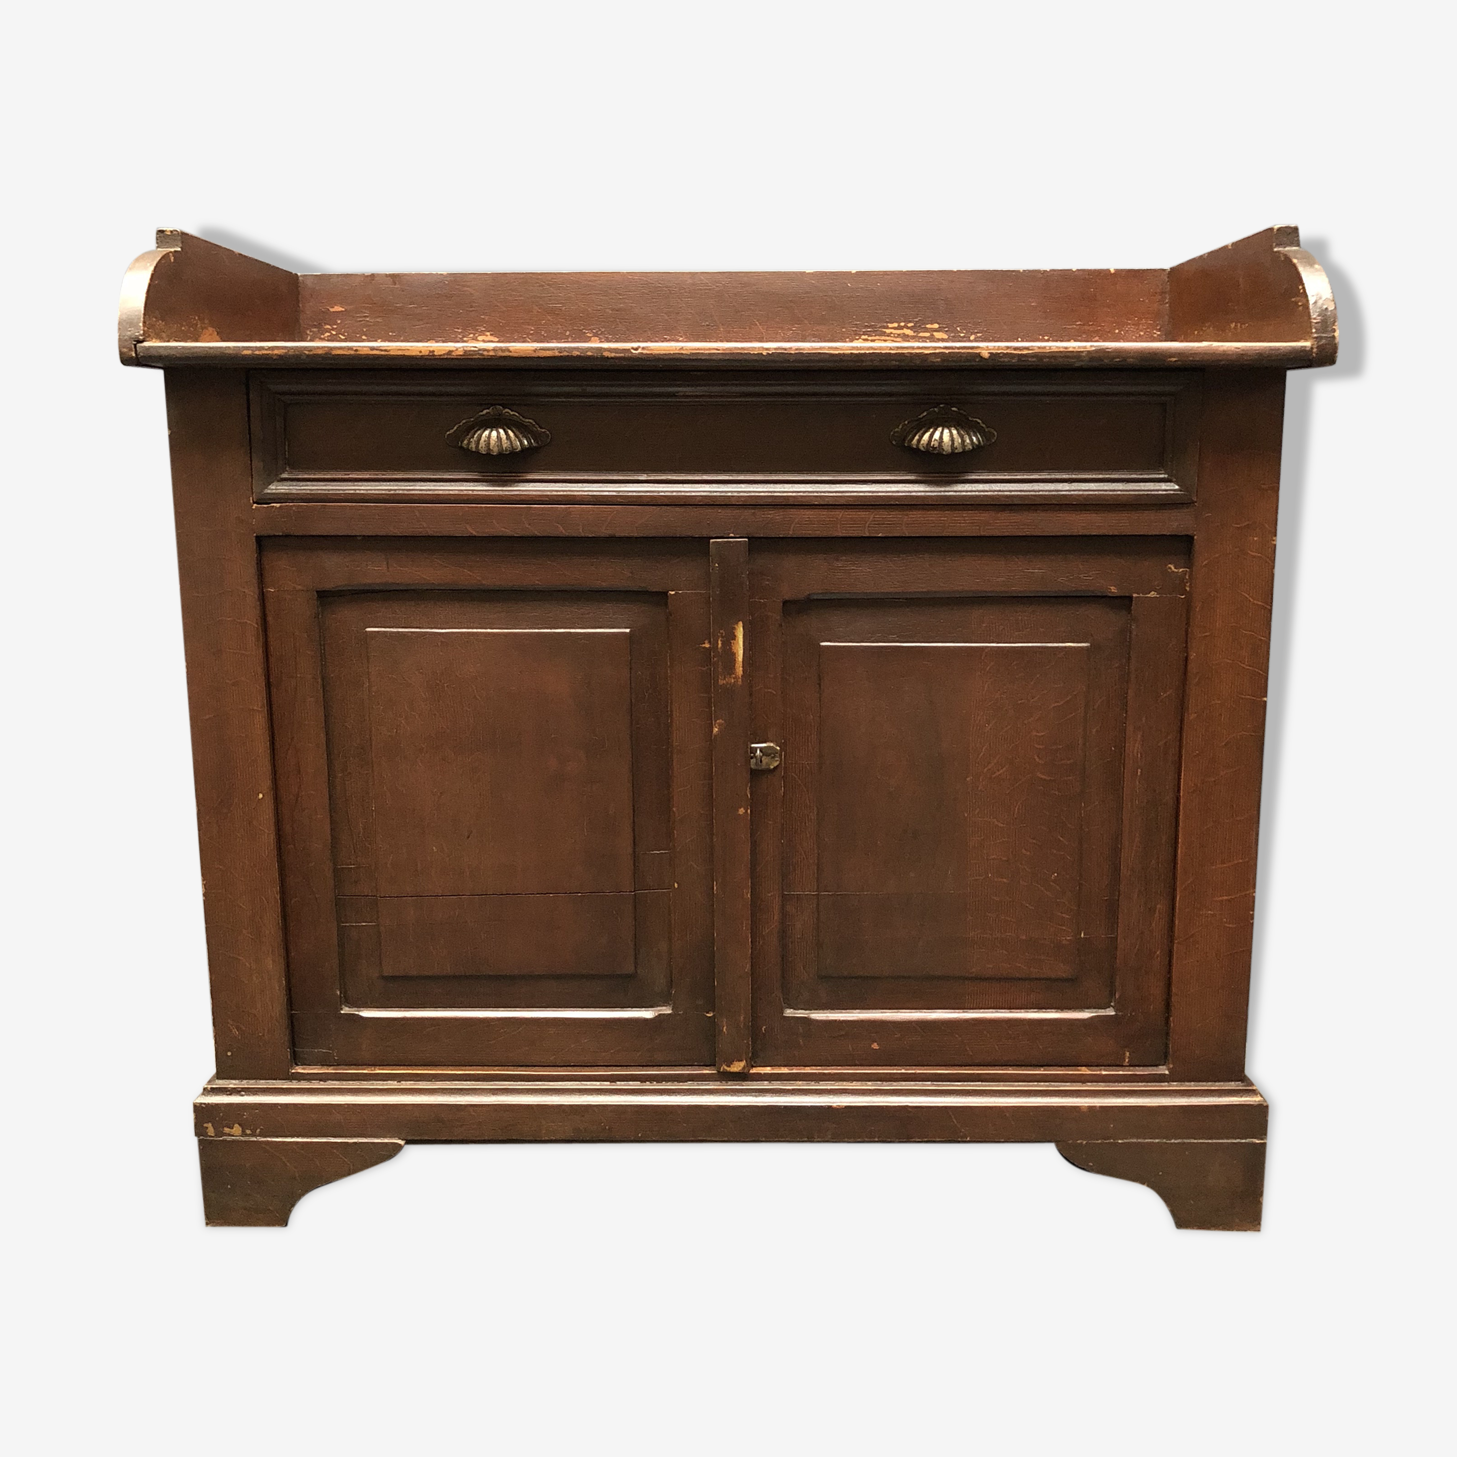 French dresser from the late 1800